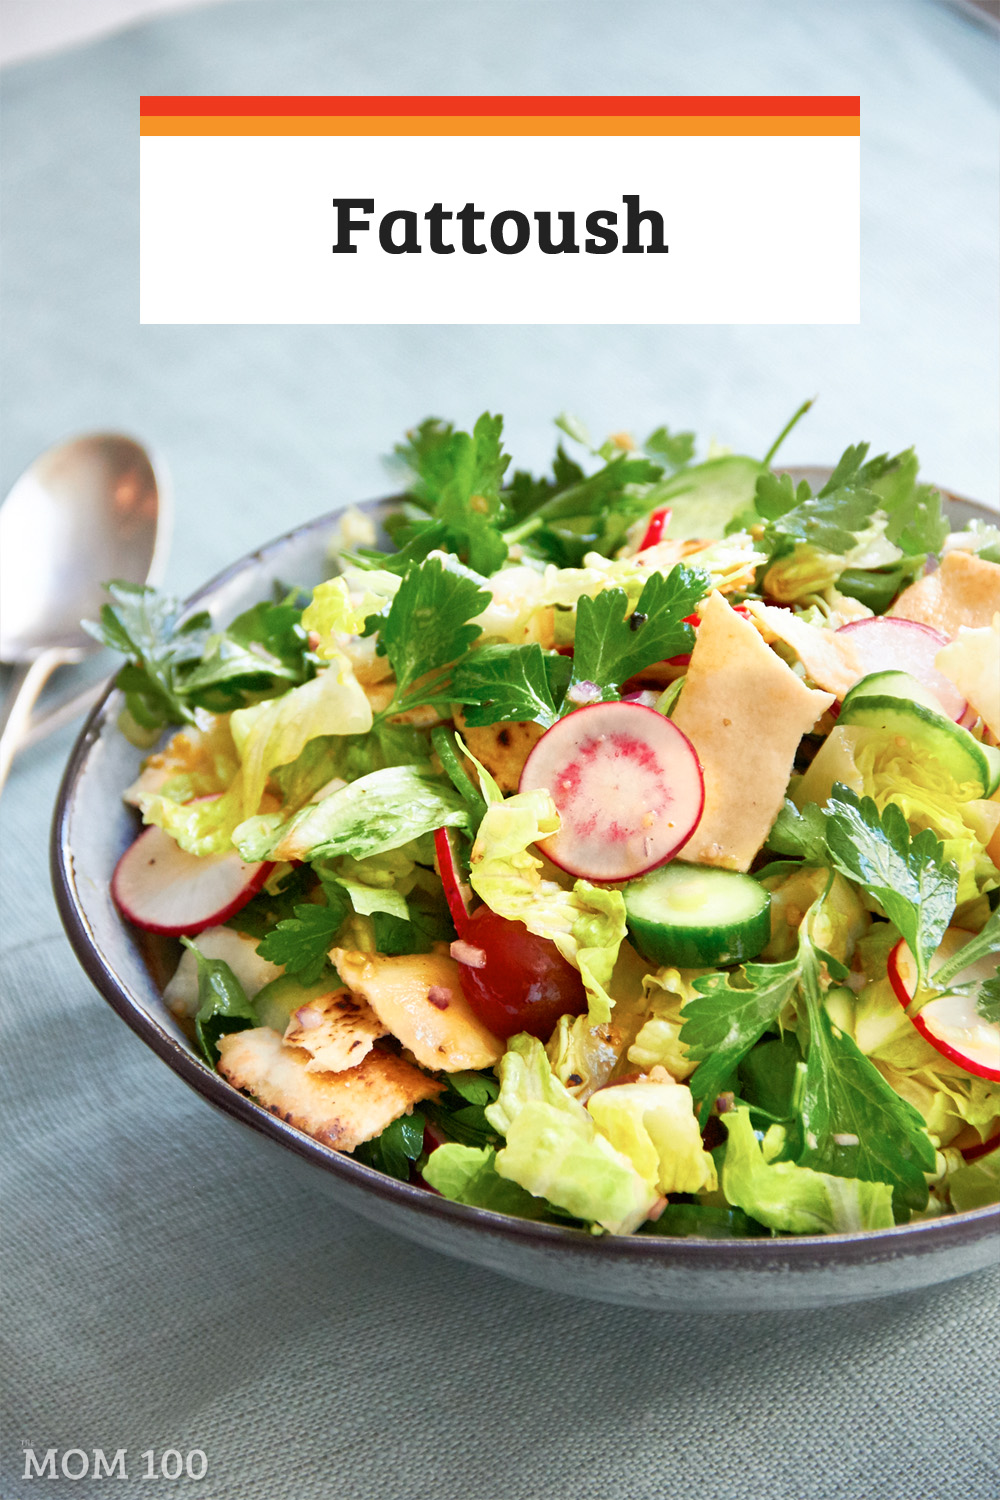 One of the amazing dishes that appears on the table during Ramadan is Fattoush, a salad with a flatbread (like pita), tomatoes, and cucumbers, and we all need to b ring this into our lives.